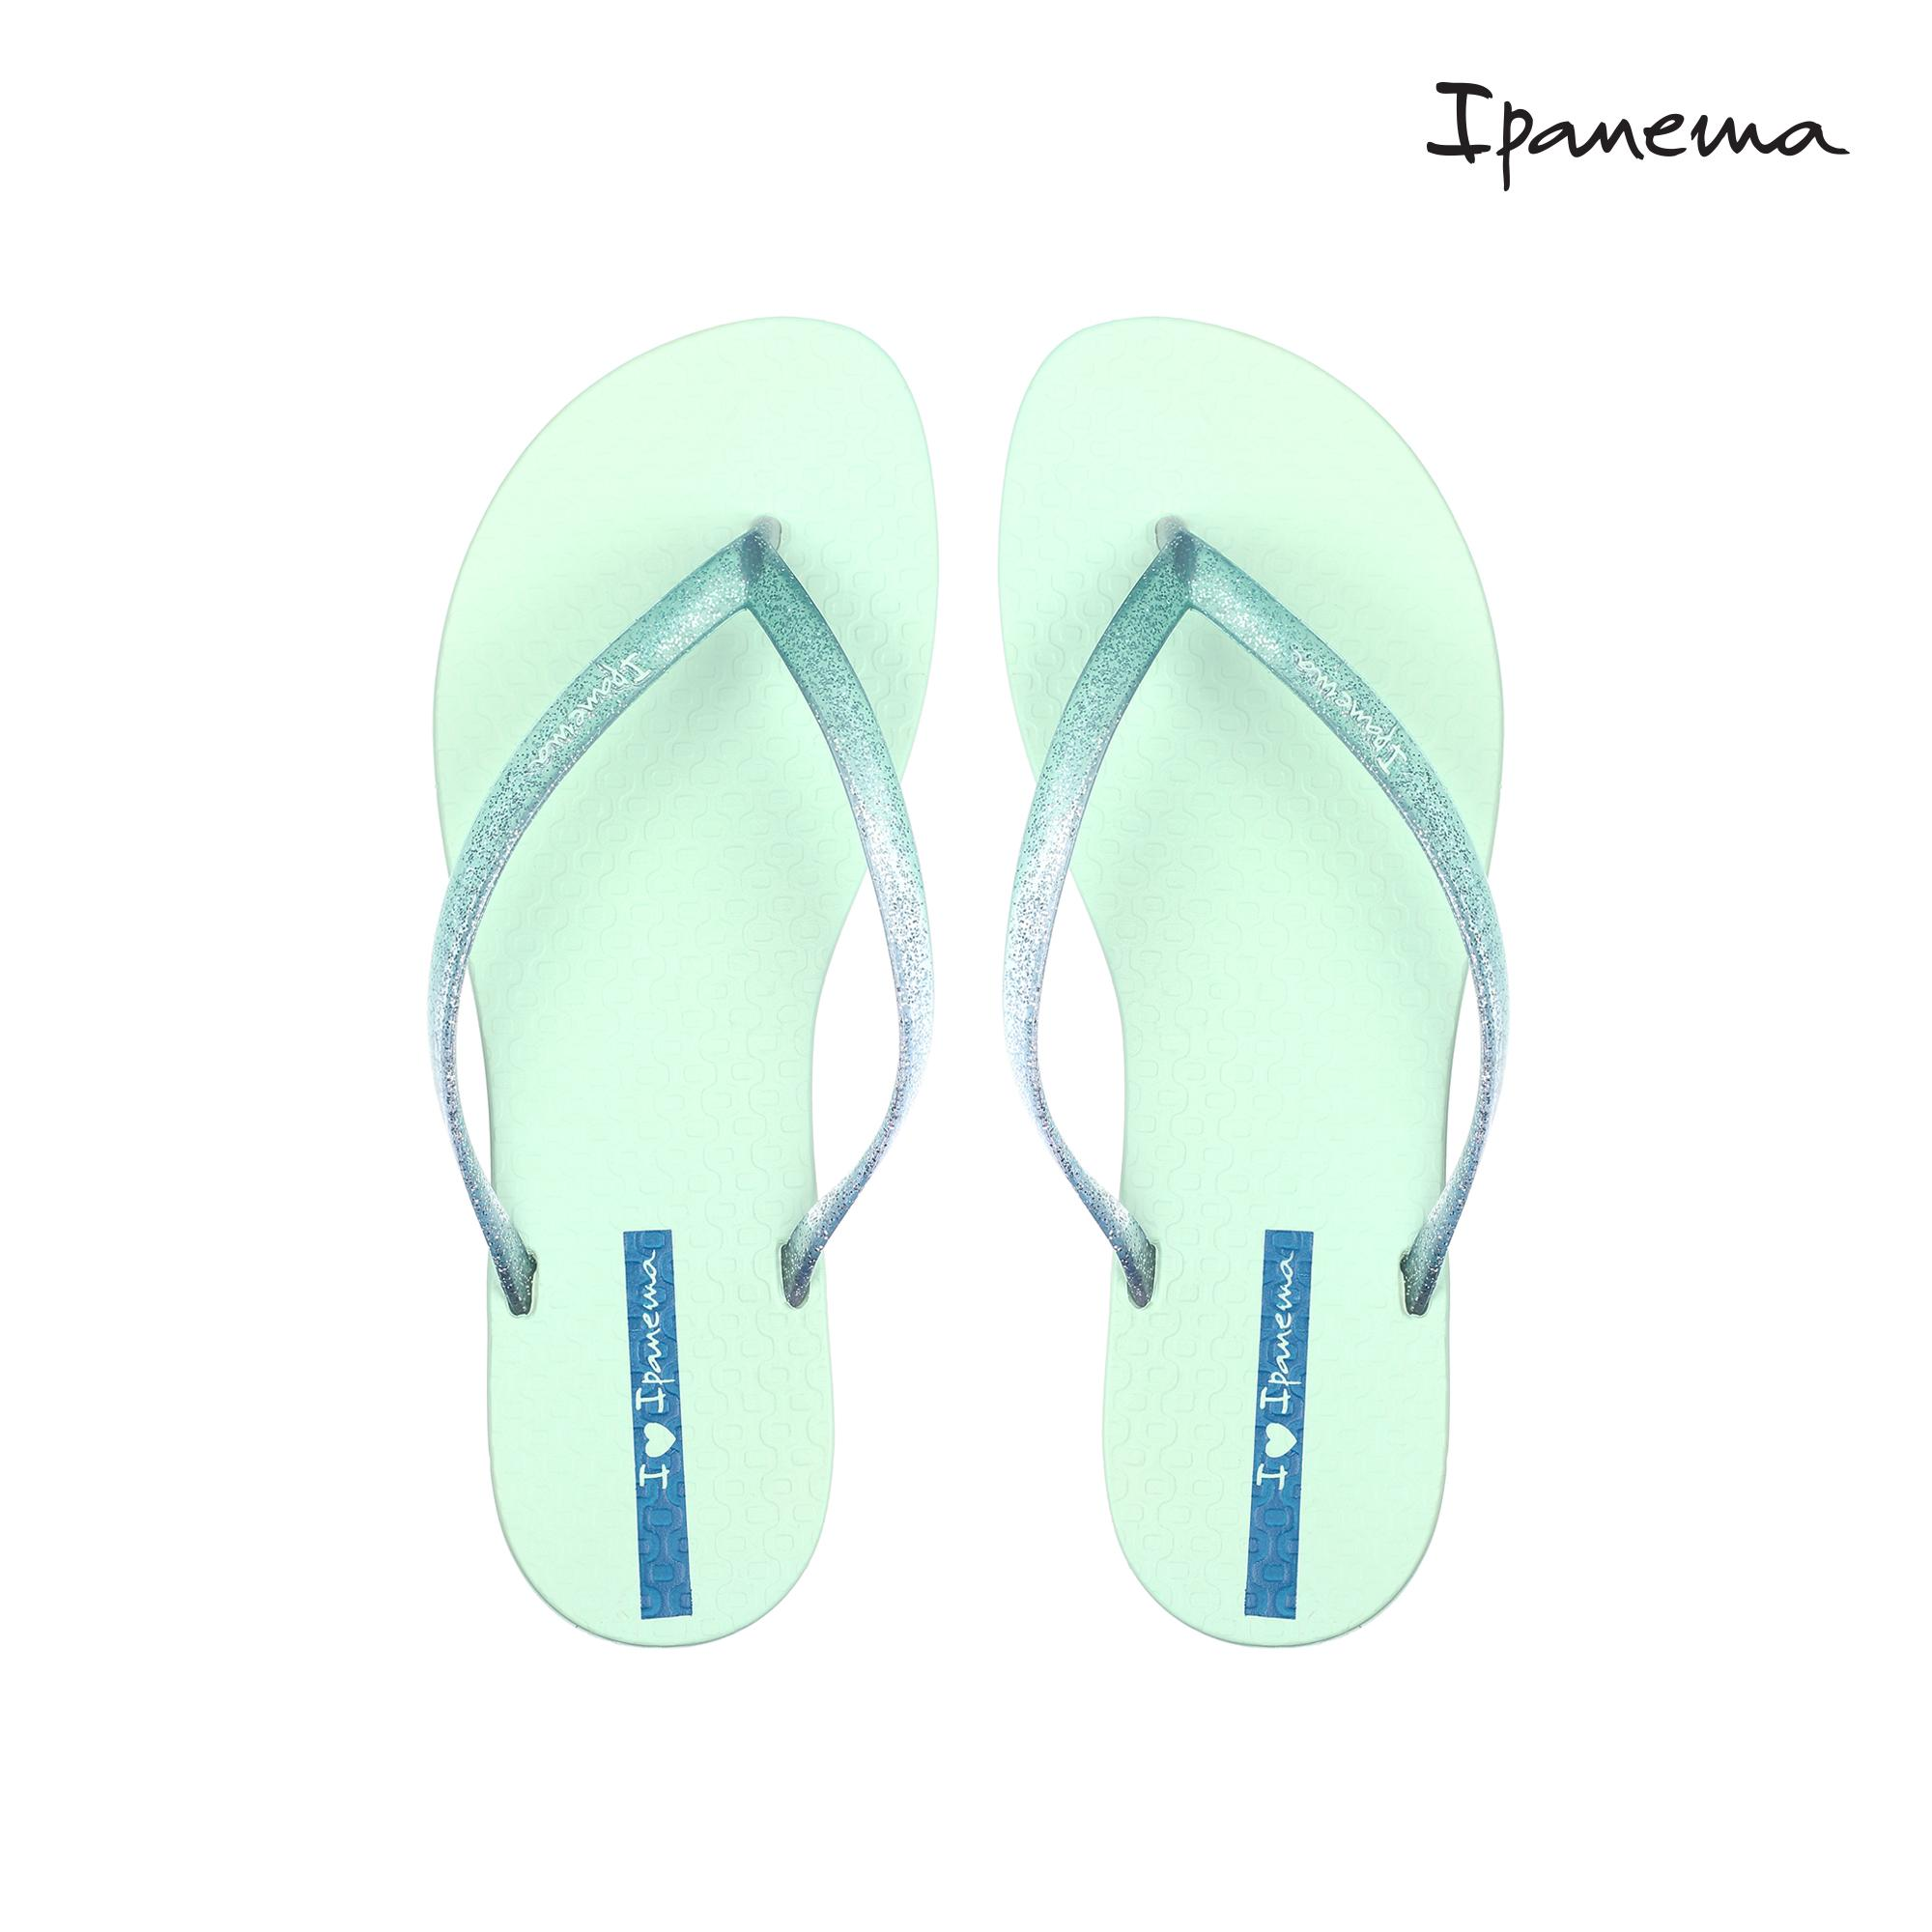 e1269a2358 Ipanema Philippines: Ipanema price list - Ipanema Flip Flop ...